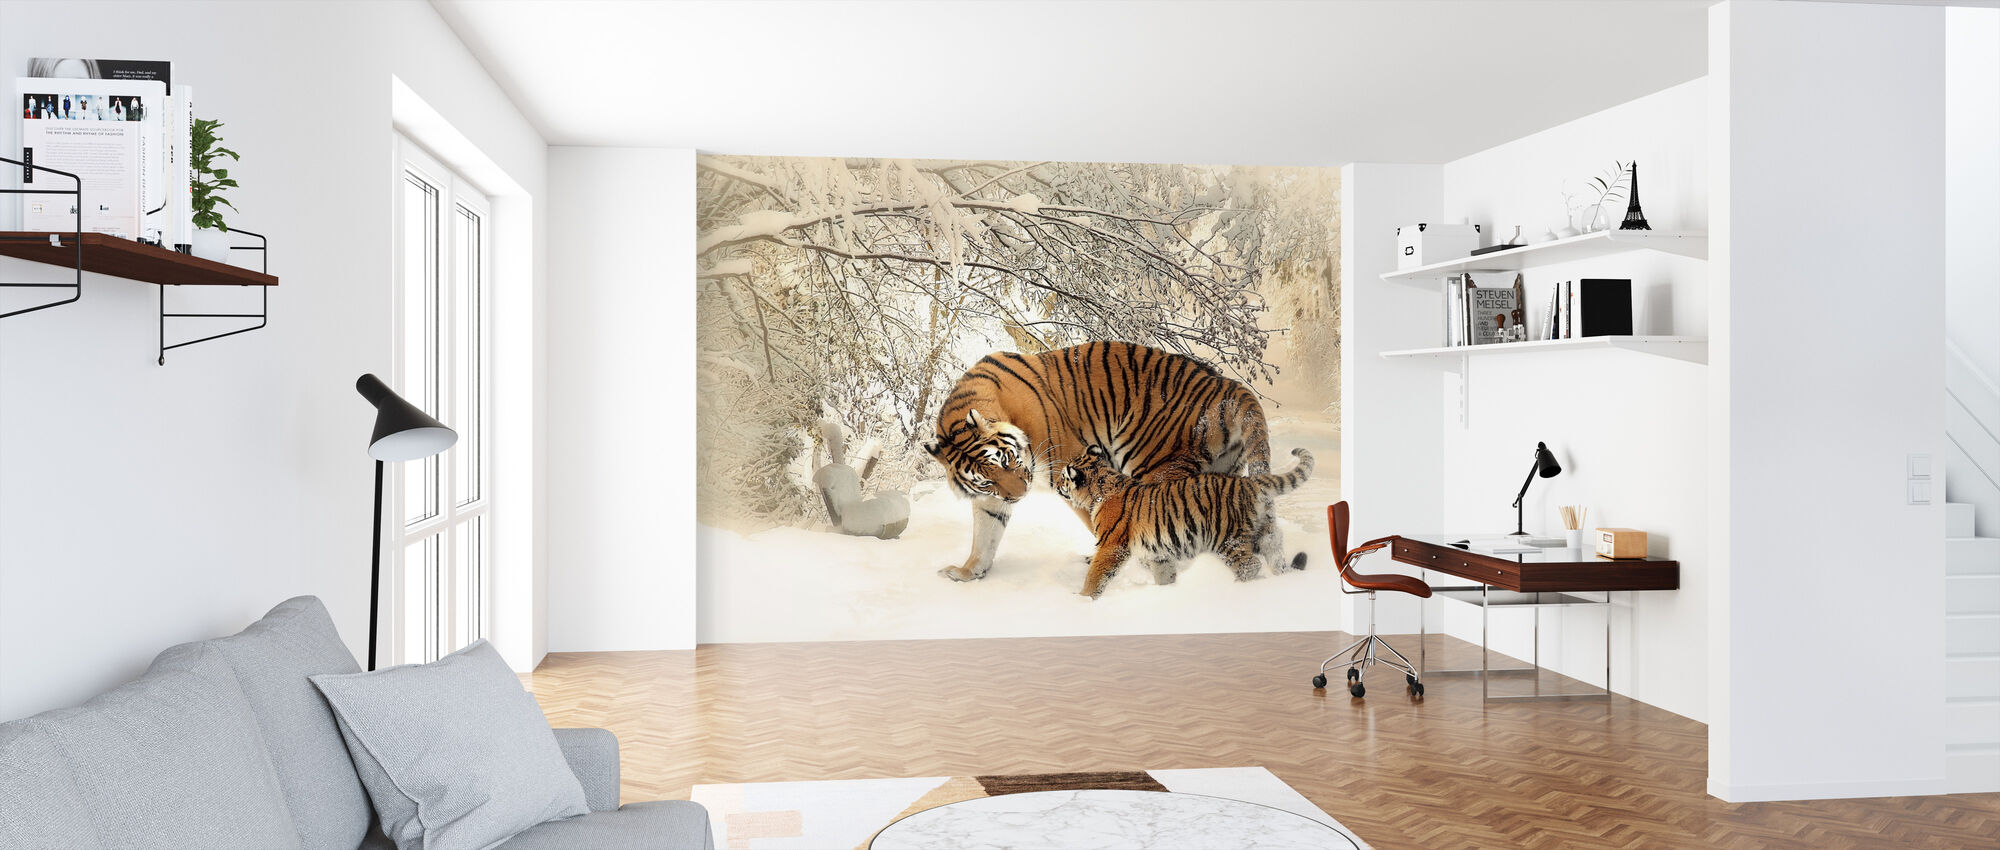 Tiger with Young Cub - Wallpaper - Office